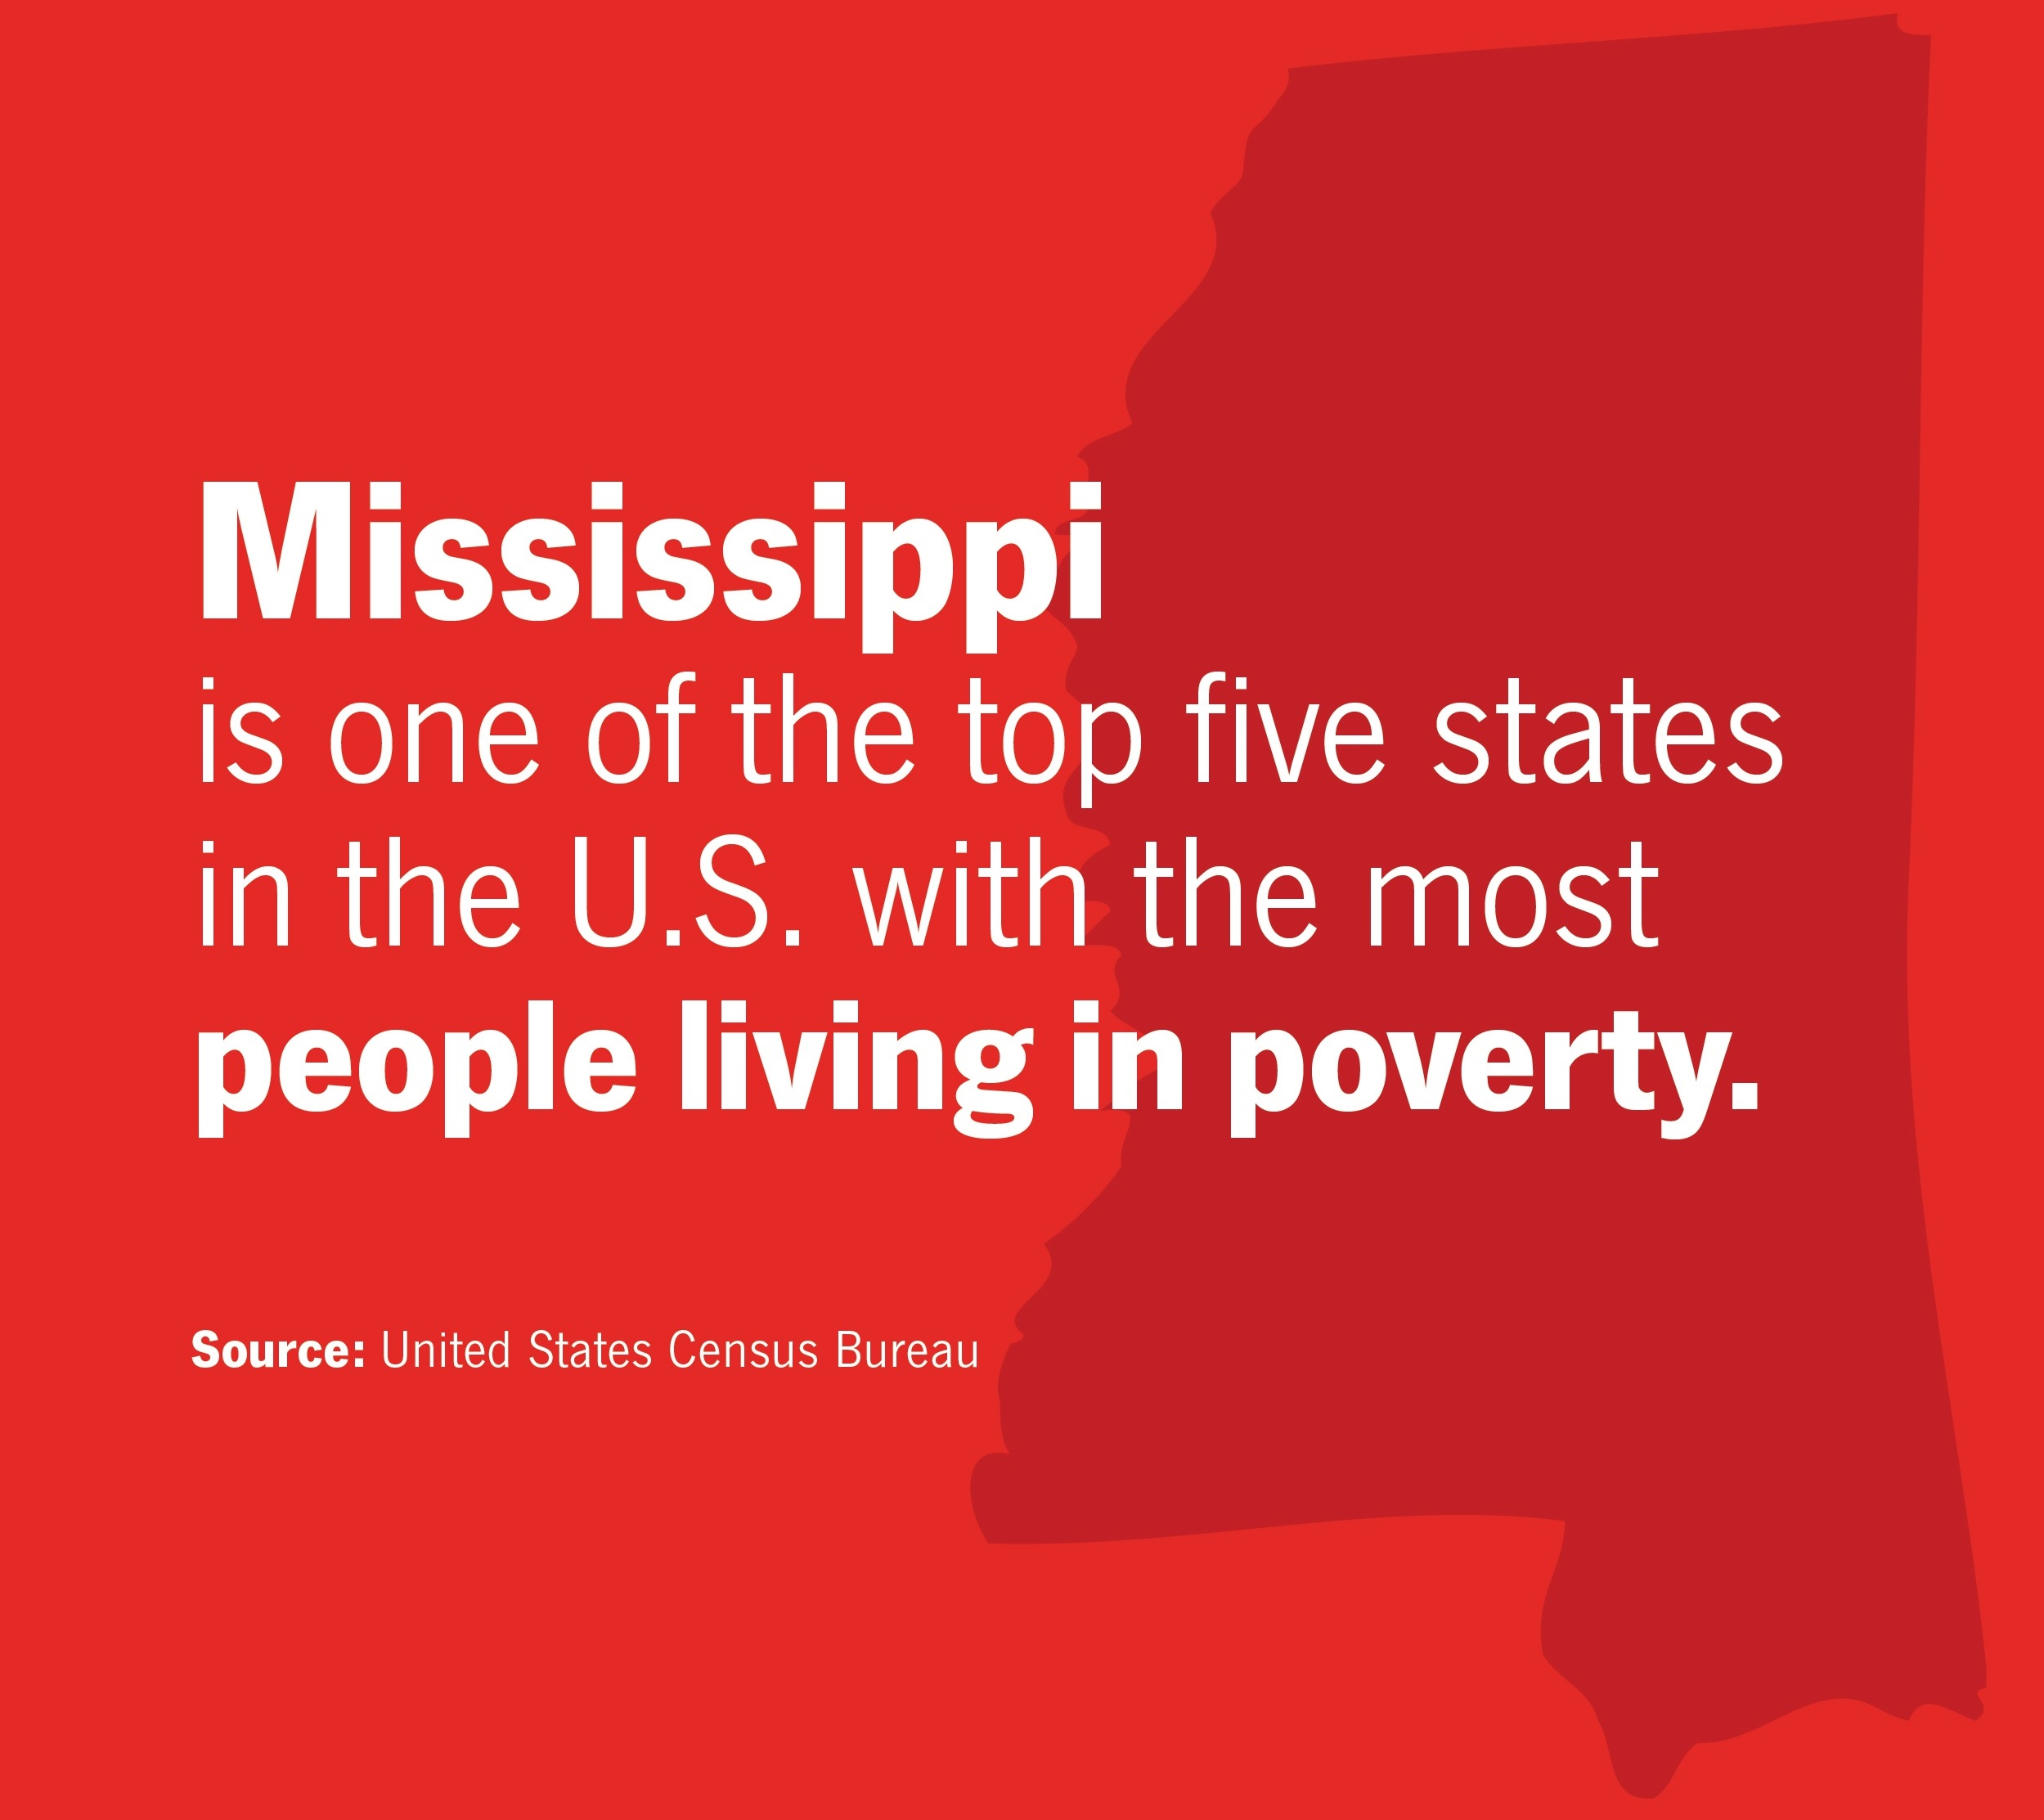 Mississippi is one of the top five states in the U.S. with the most people living in poverty. Source: United States Census Bureau.